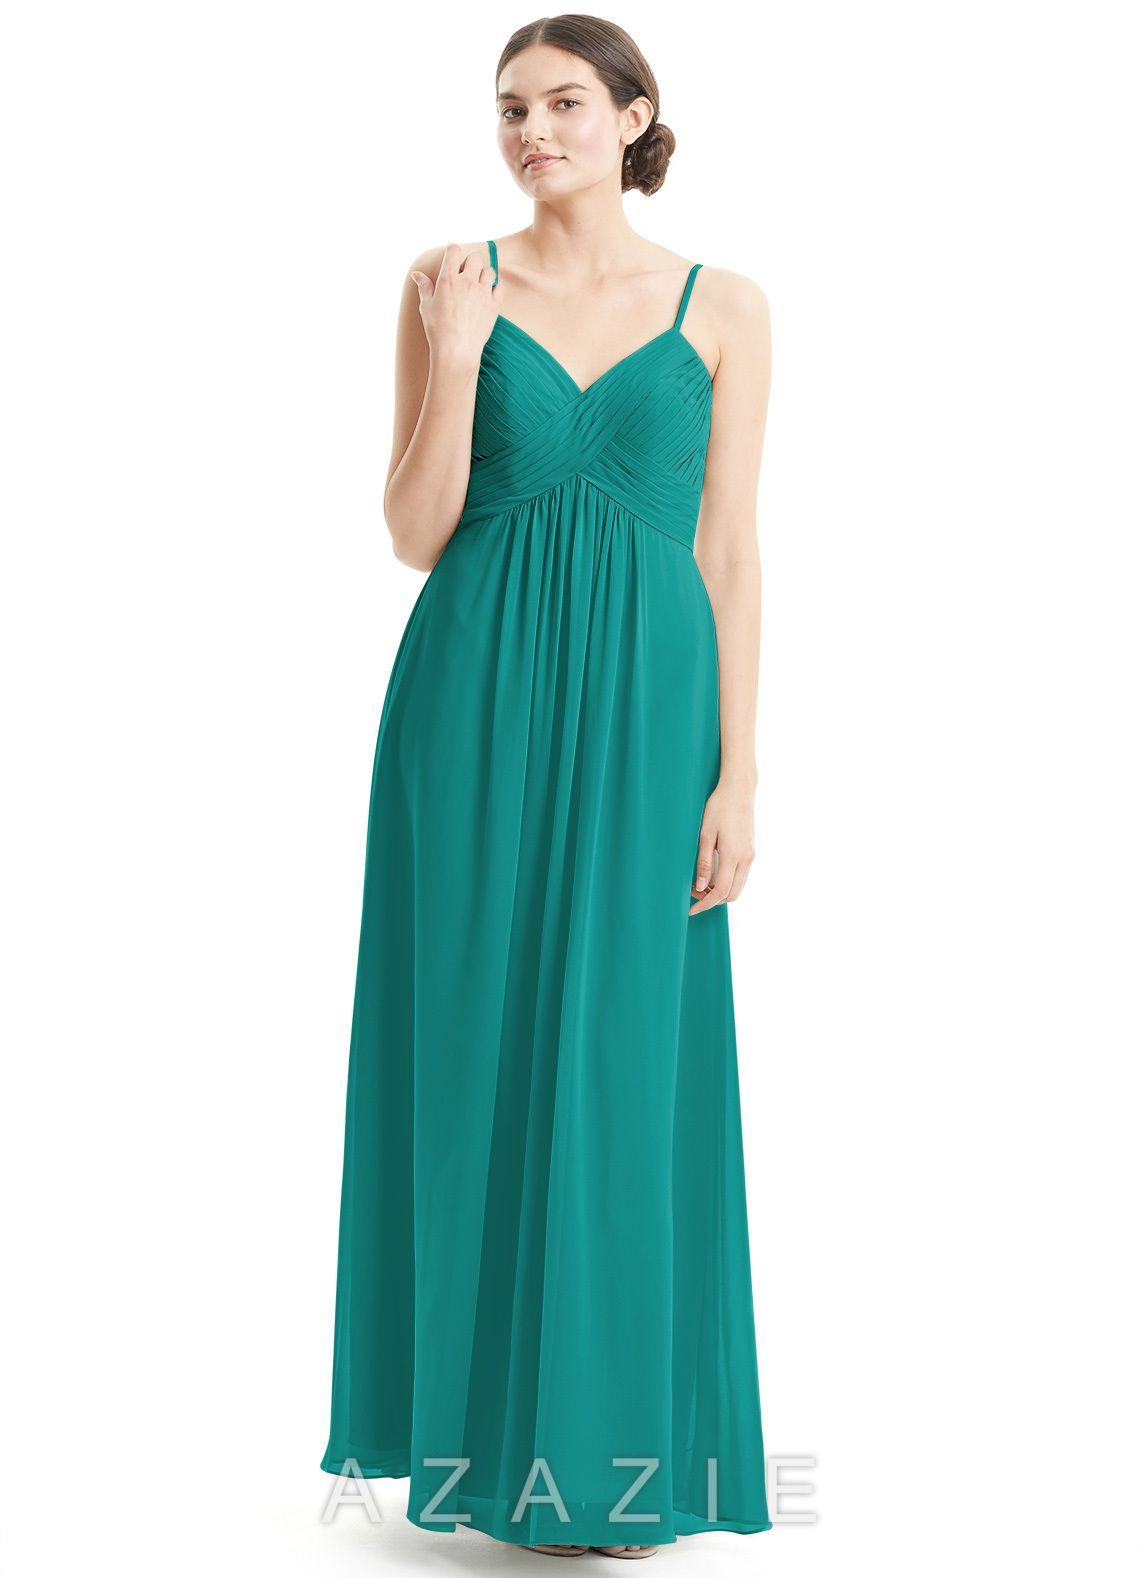 Shop Azazie Bridesmaid Dress - Shannon in Chiffon. Find the perfect ...